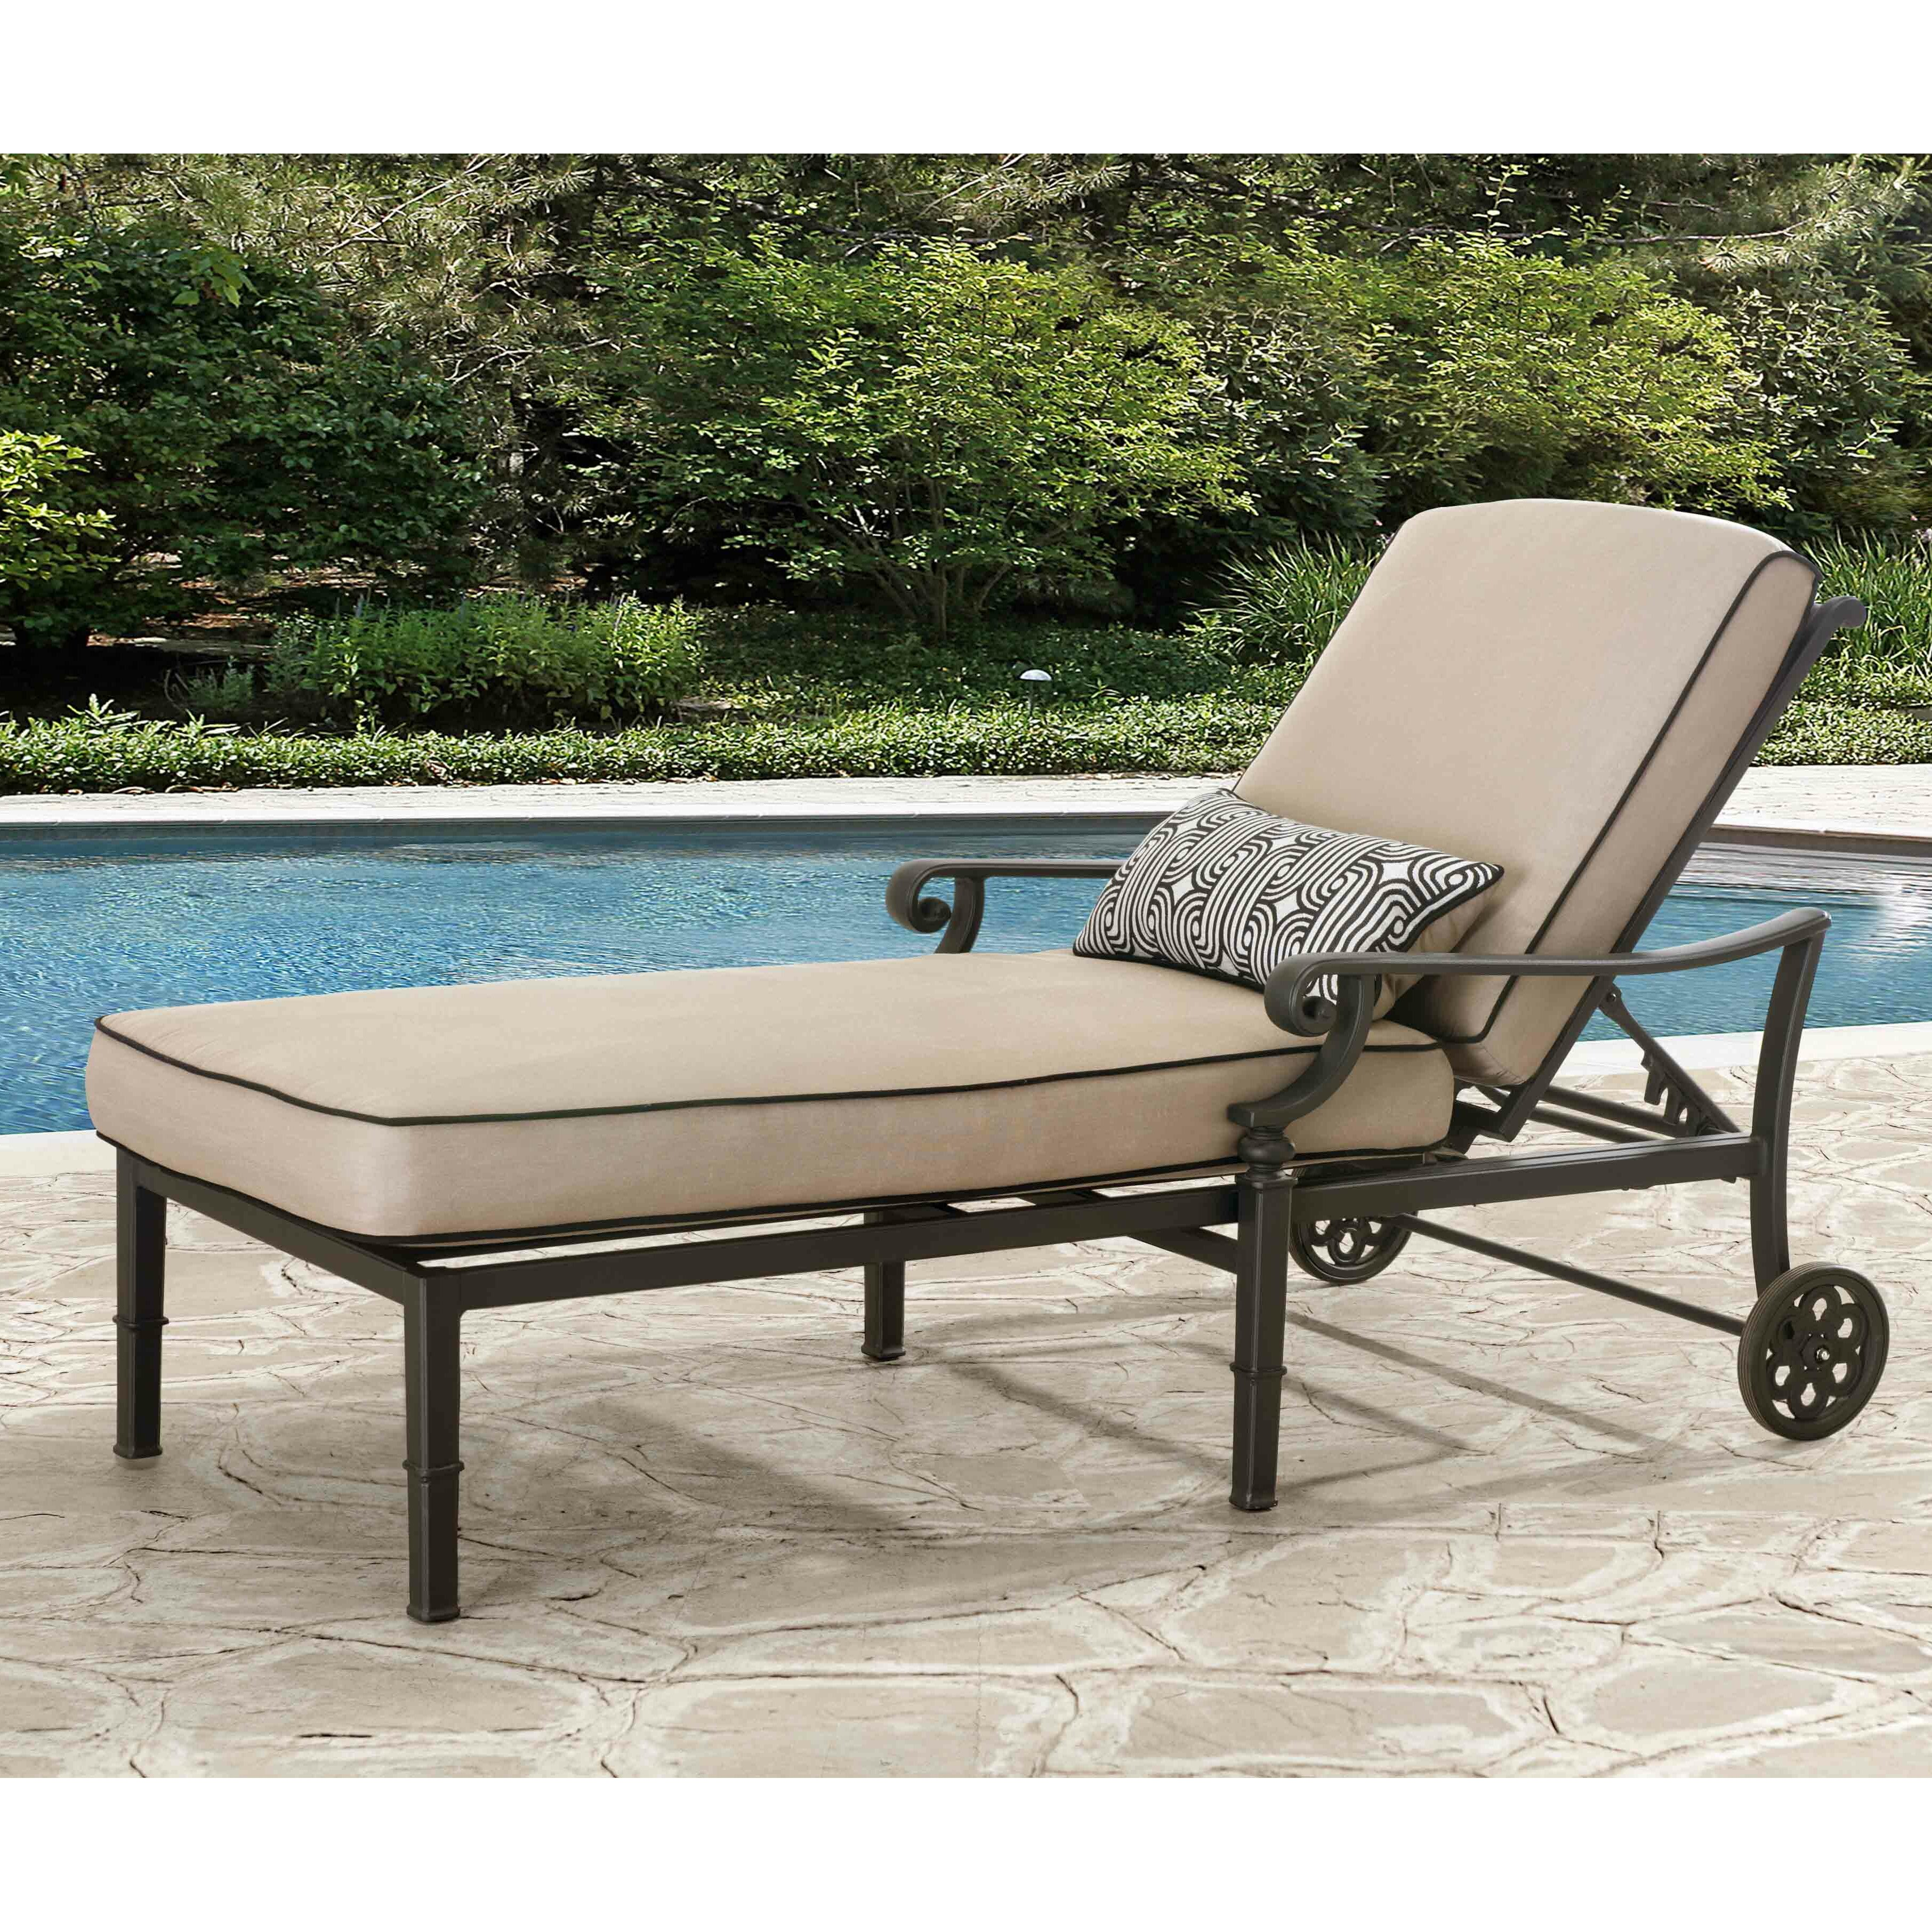 Darby home co derry chaise lounge with cushion wayfair for Chaise lounge company